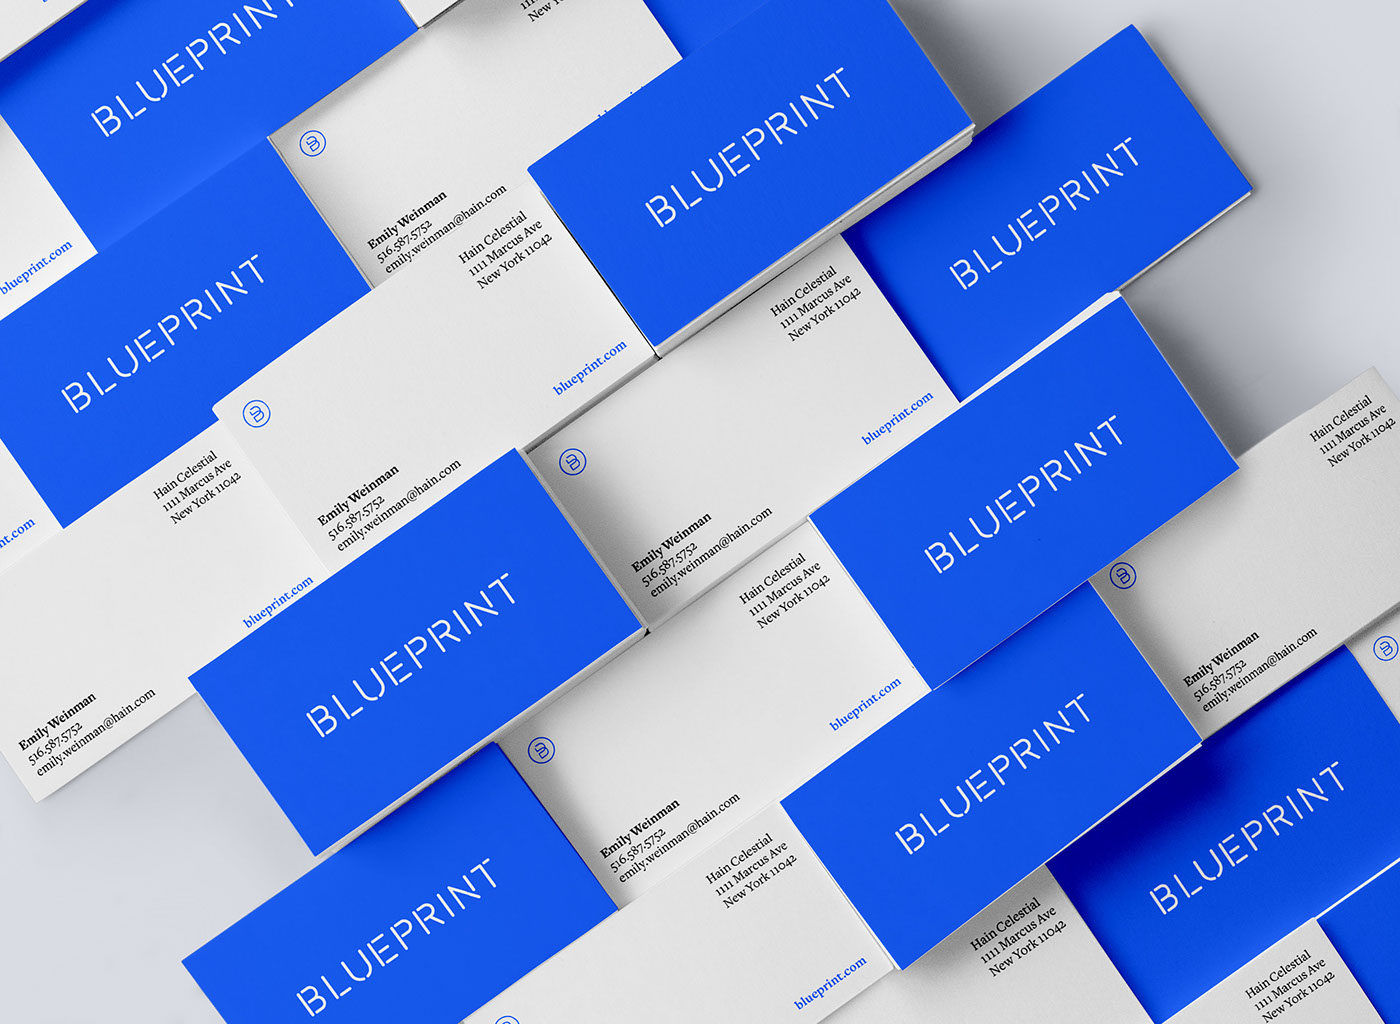 Blueprint on behance blueprint juice started in early 2000 in new york city by zoe sakoutis a certified nutritional consultant and food lover erica huss malvernweather Image collections